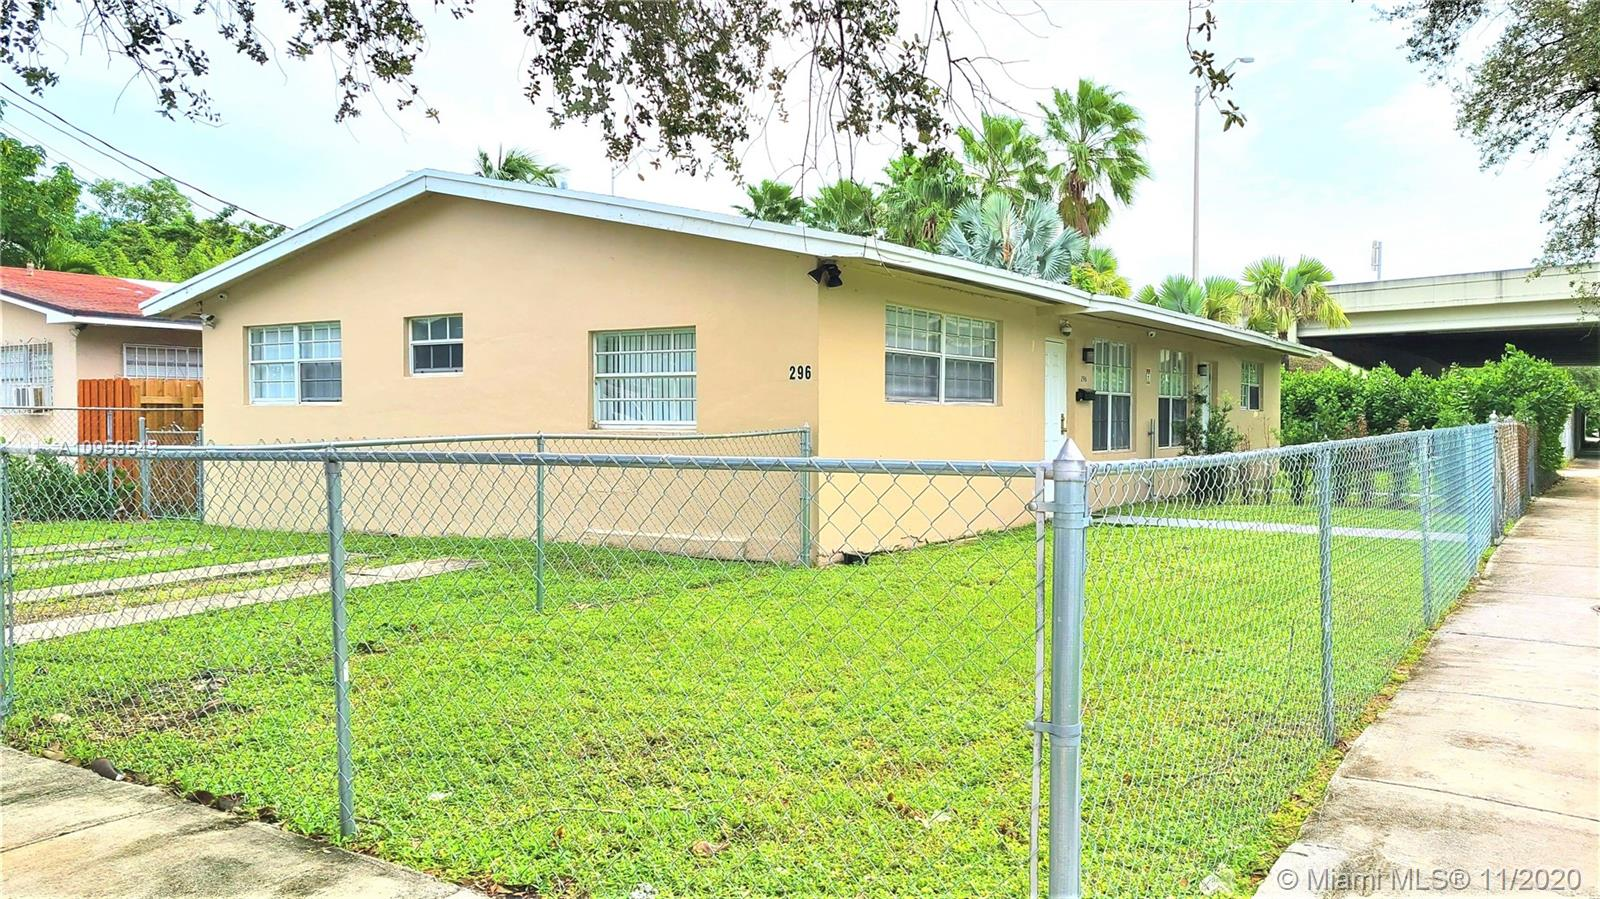 Details for 296 39th St, Miami, FL 33127